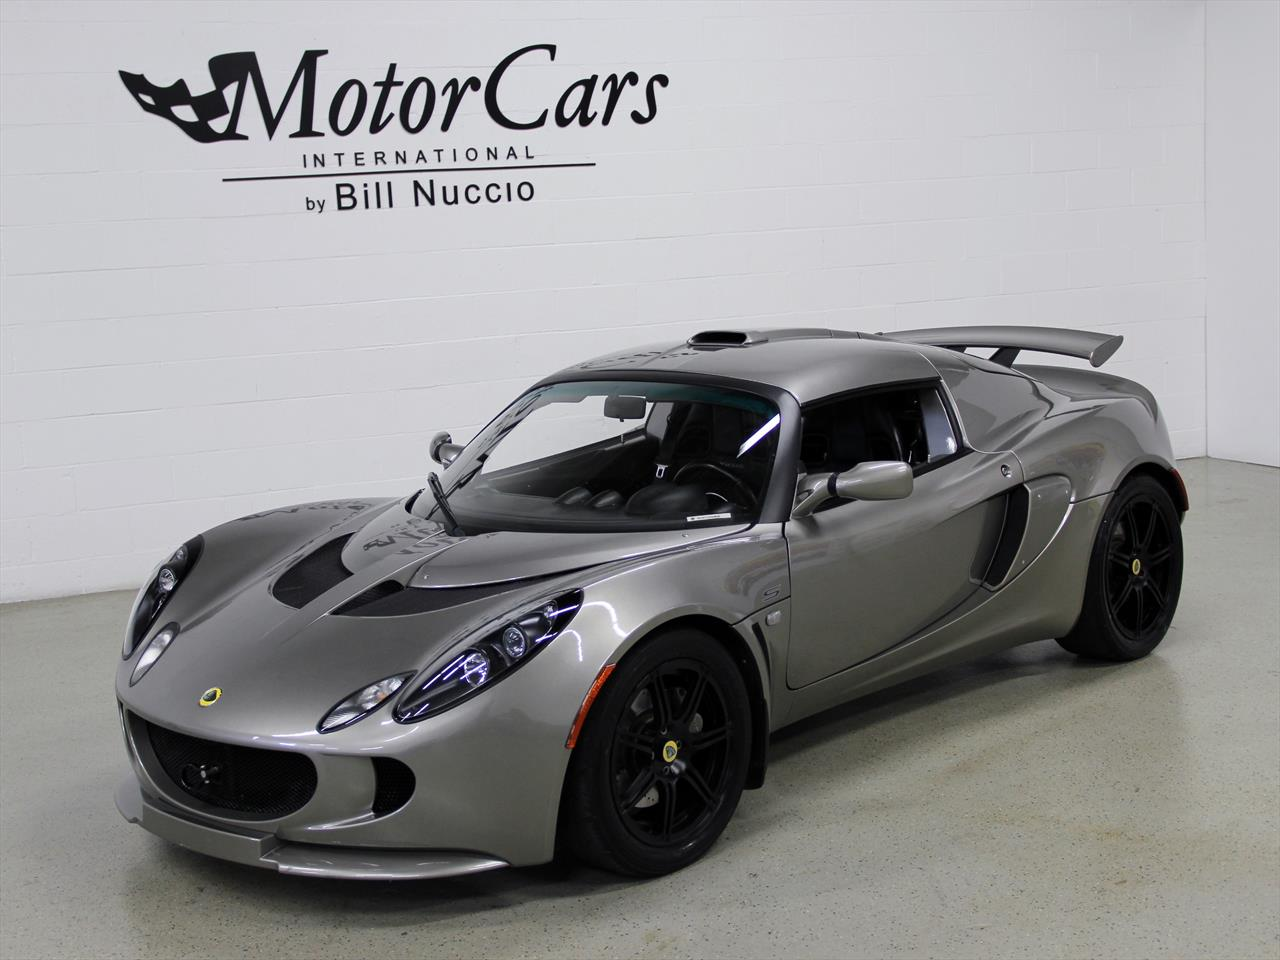 Lotus Exige for Sale / Find or Sell Used Cars, Trucks, and SUVs in USA